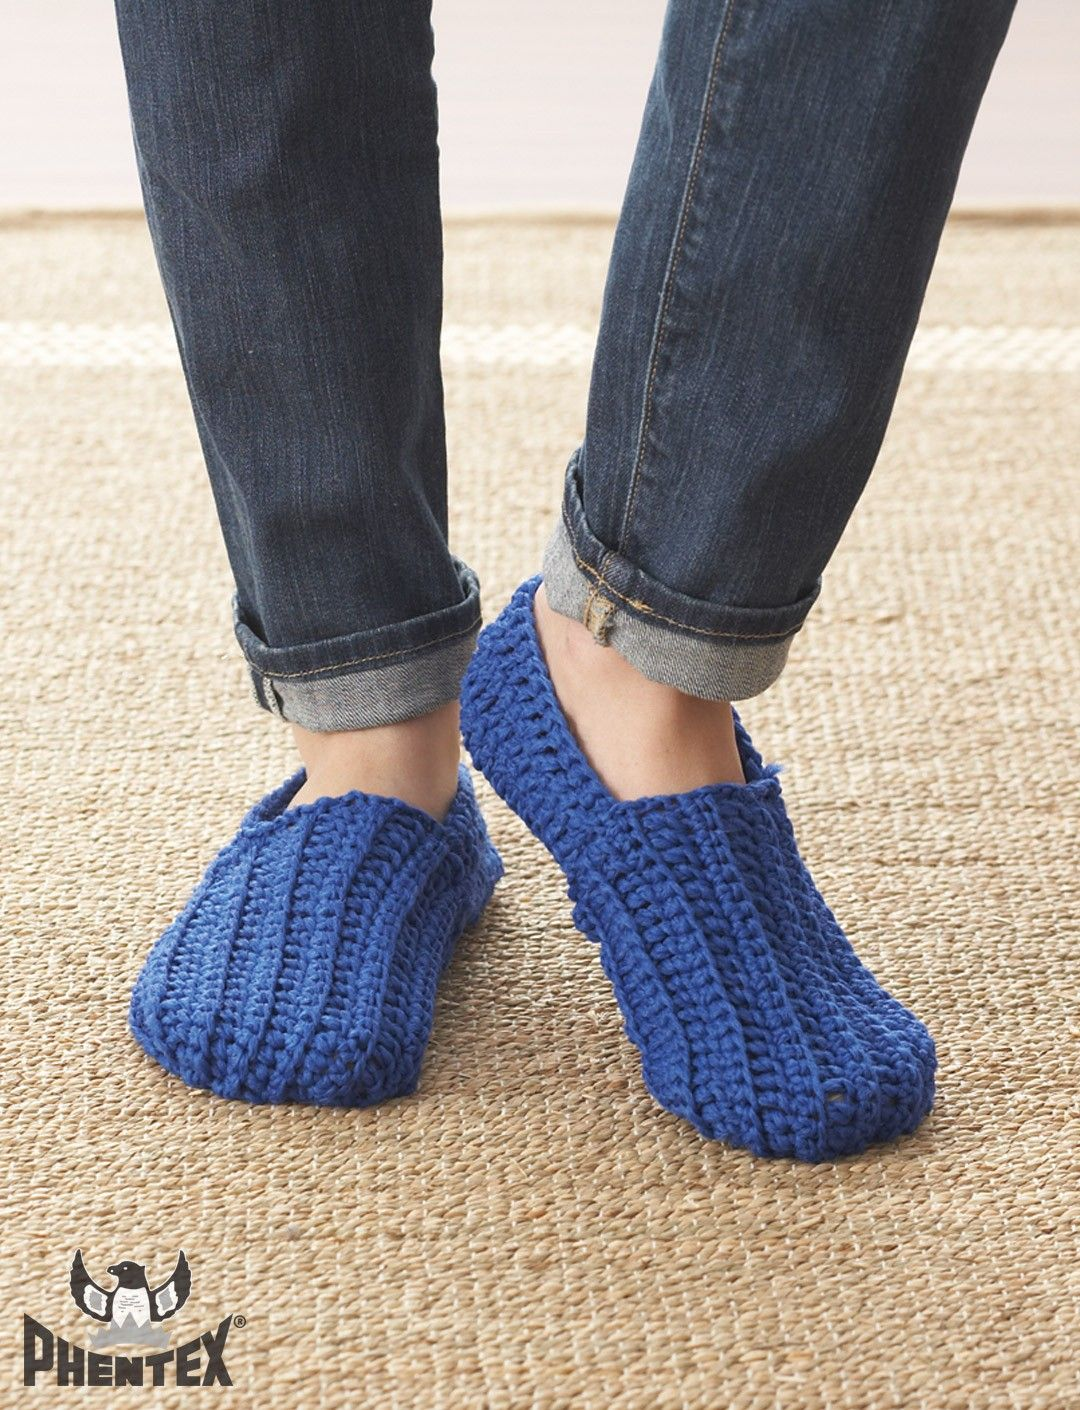 Sunday Loafers | Slippers and Socks- FREE Crochet | Pinterest ...